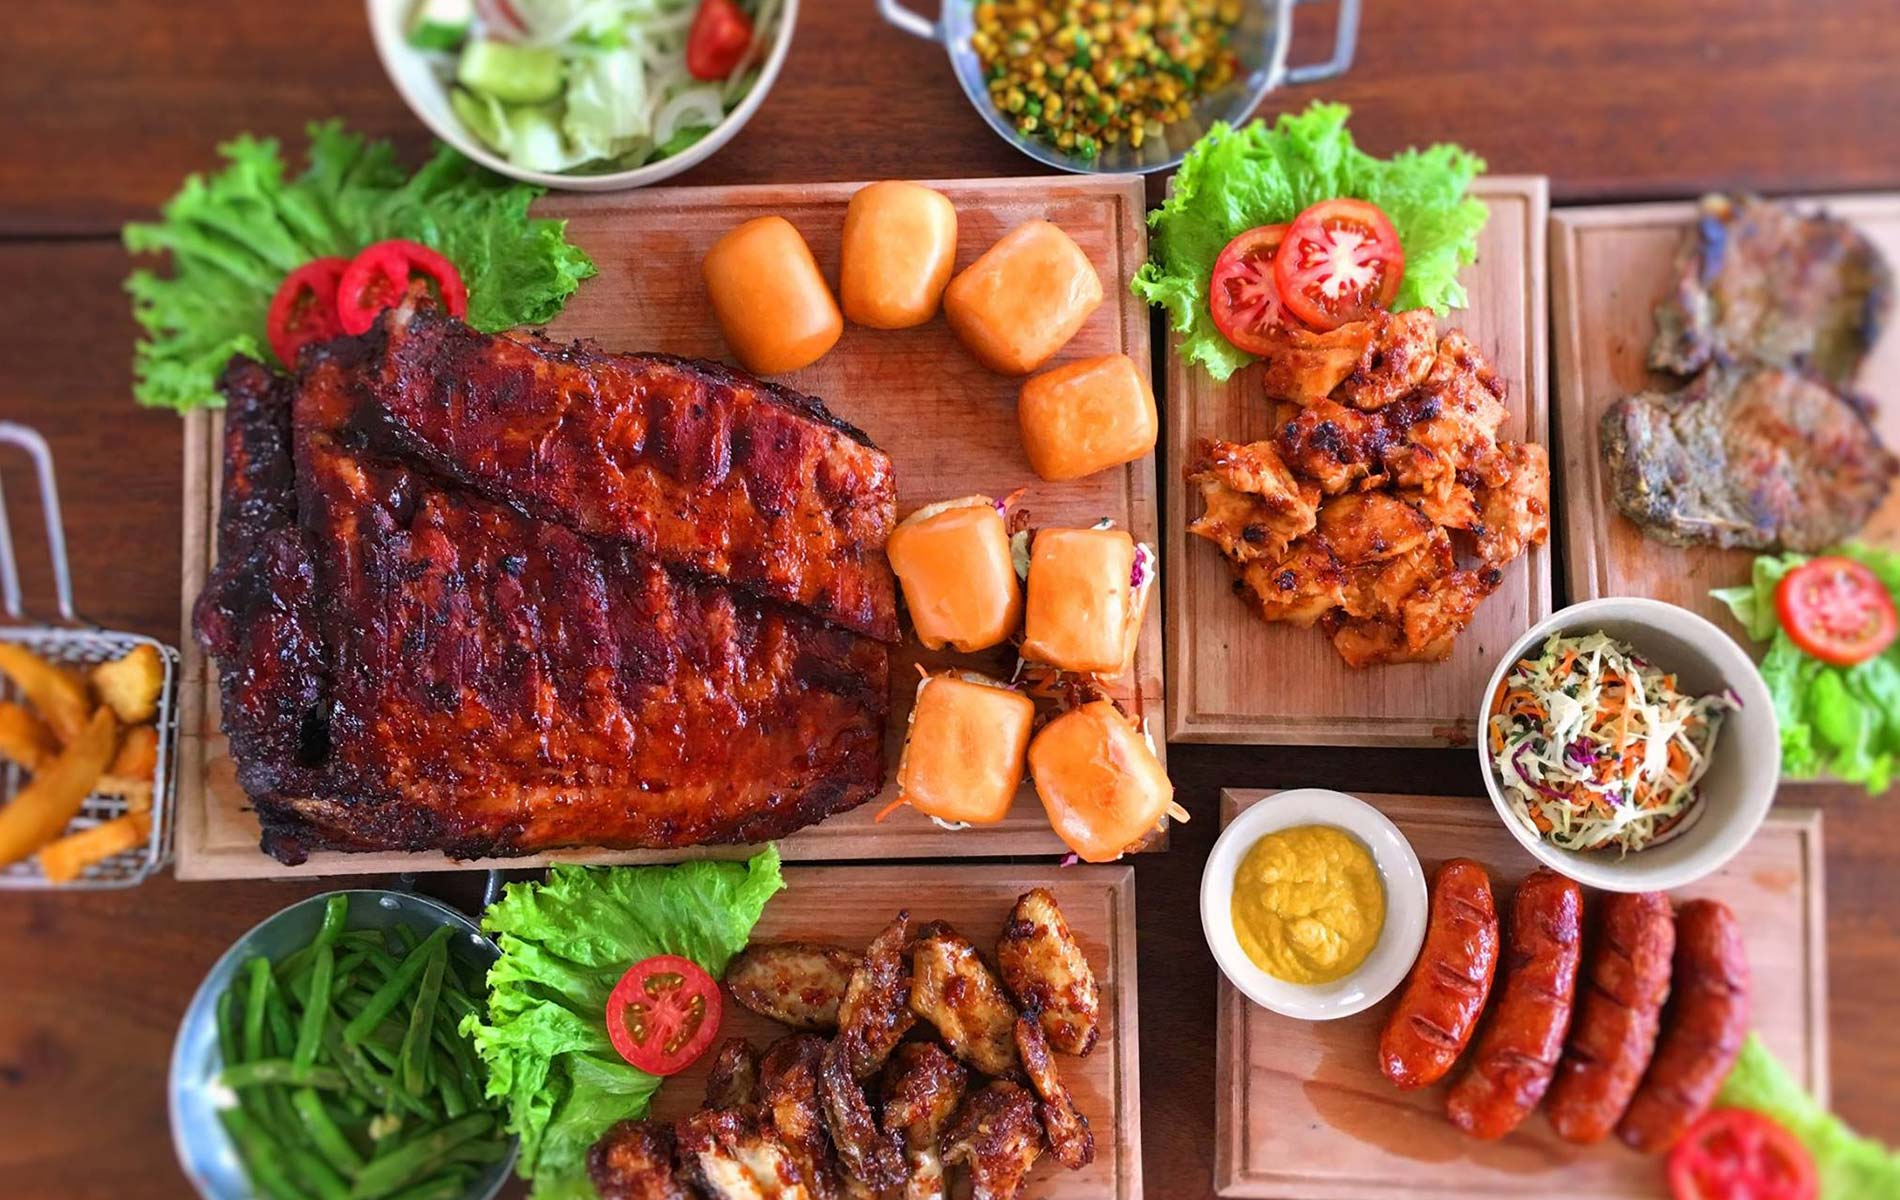 bbq-un-in-ribs-vietnam-restaurant-home-freatured image-1